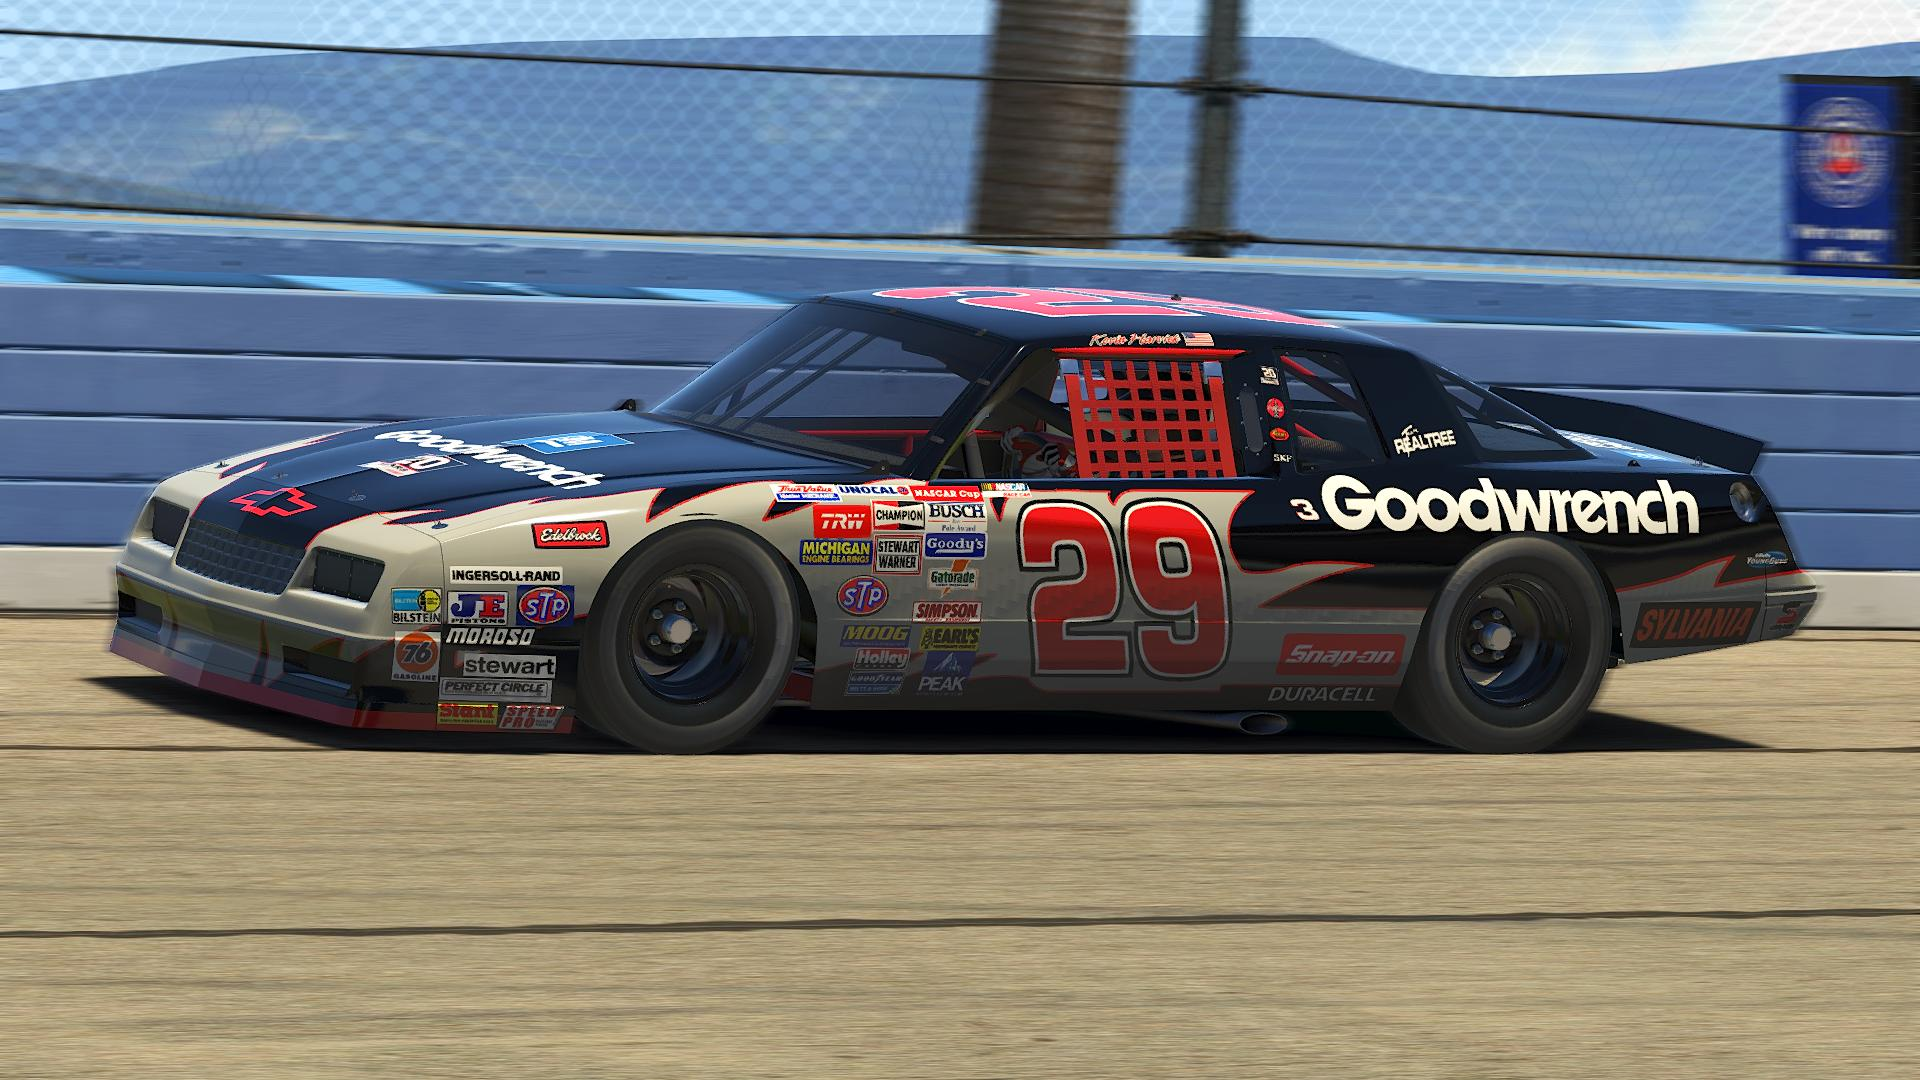 Preview of Kevin Harvick 1987 Goodwrench by Ryan Bey